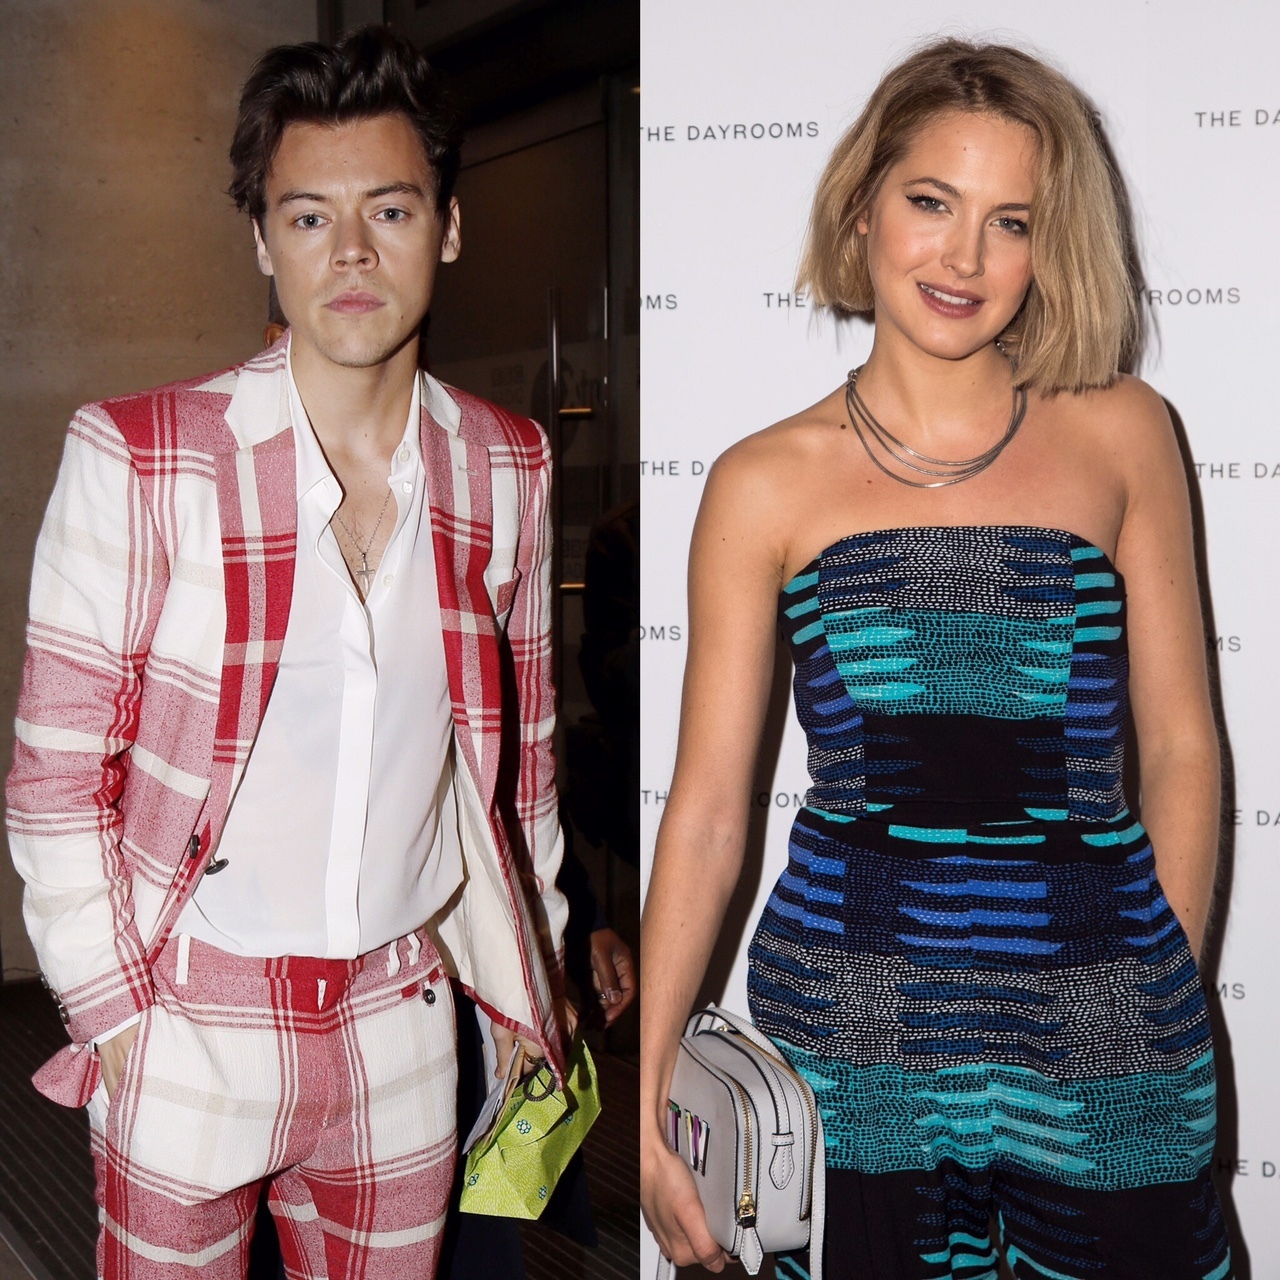 Harry Styles, Tess Ward and Camille Rowe